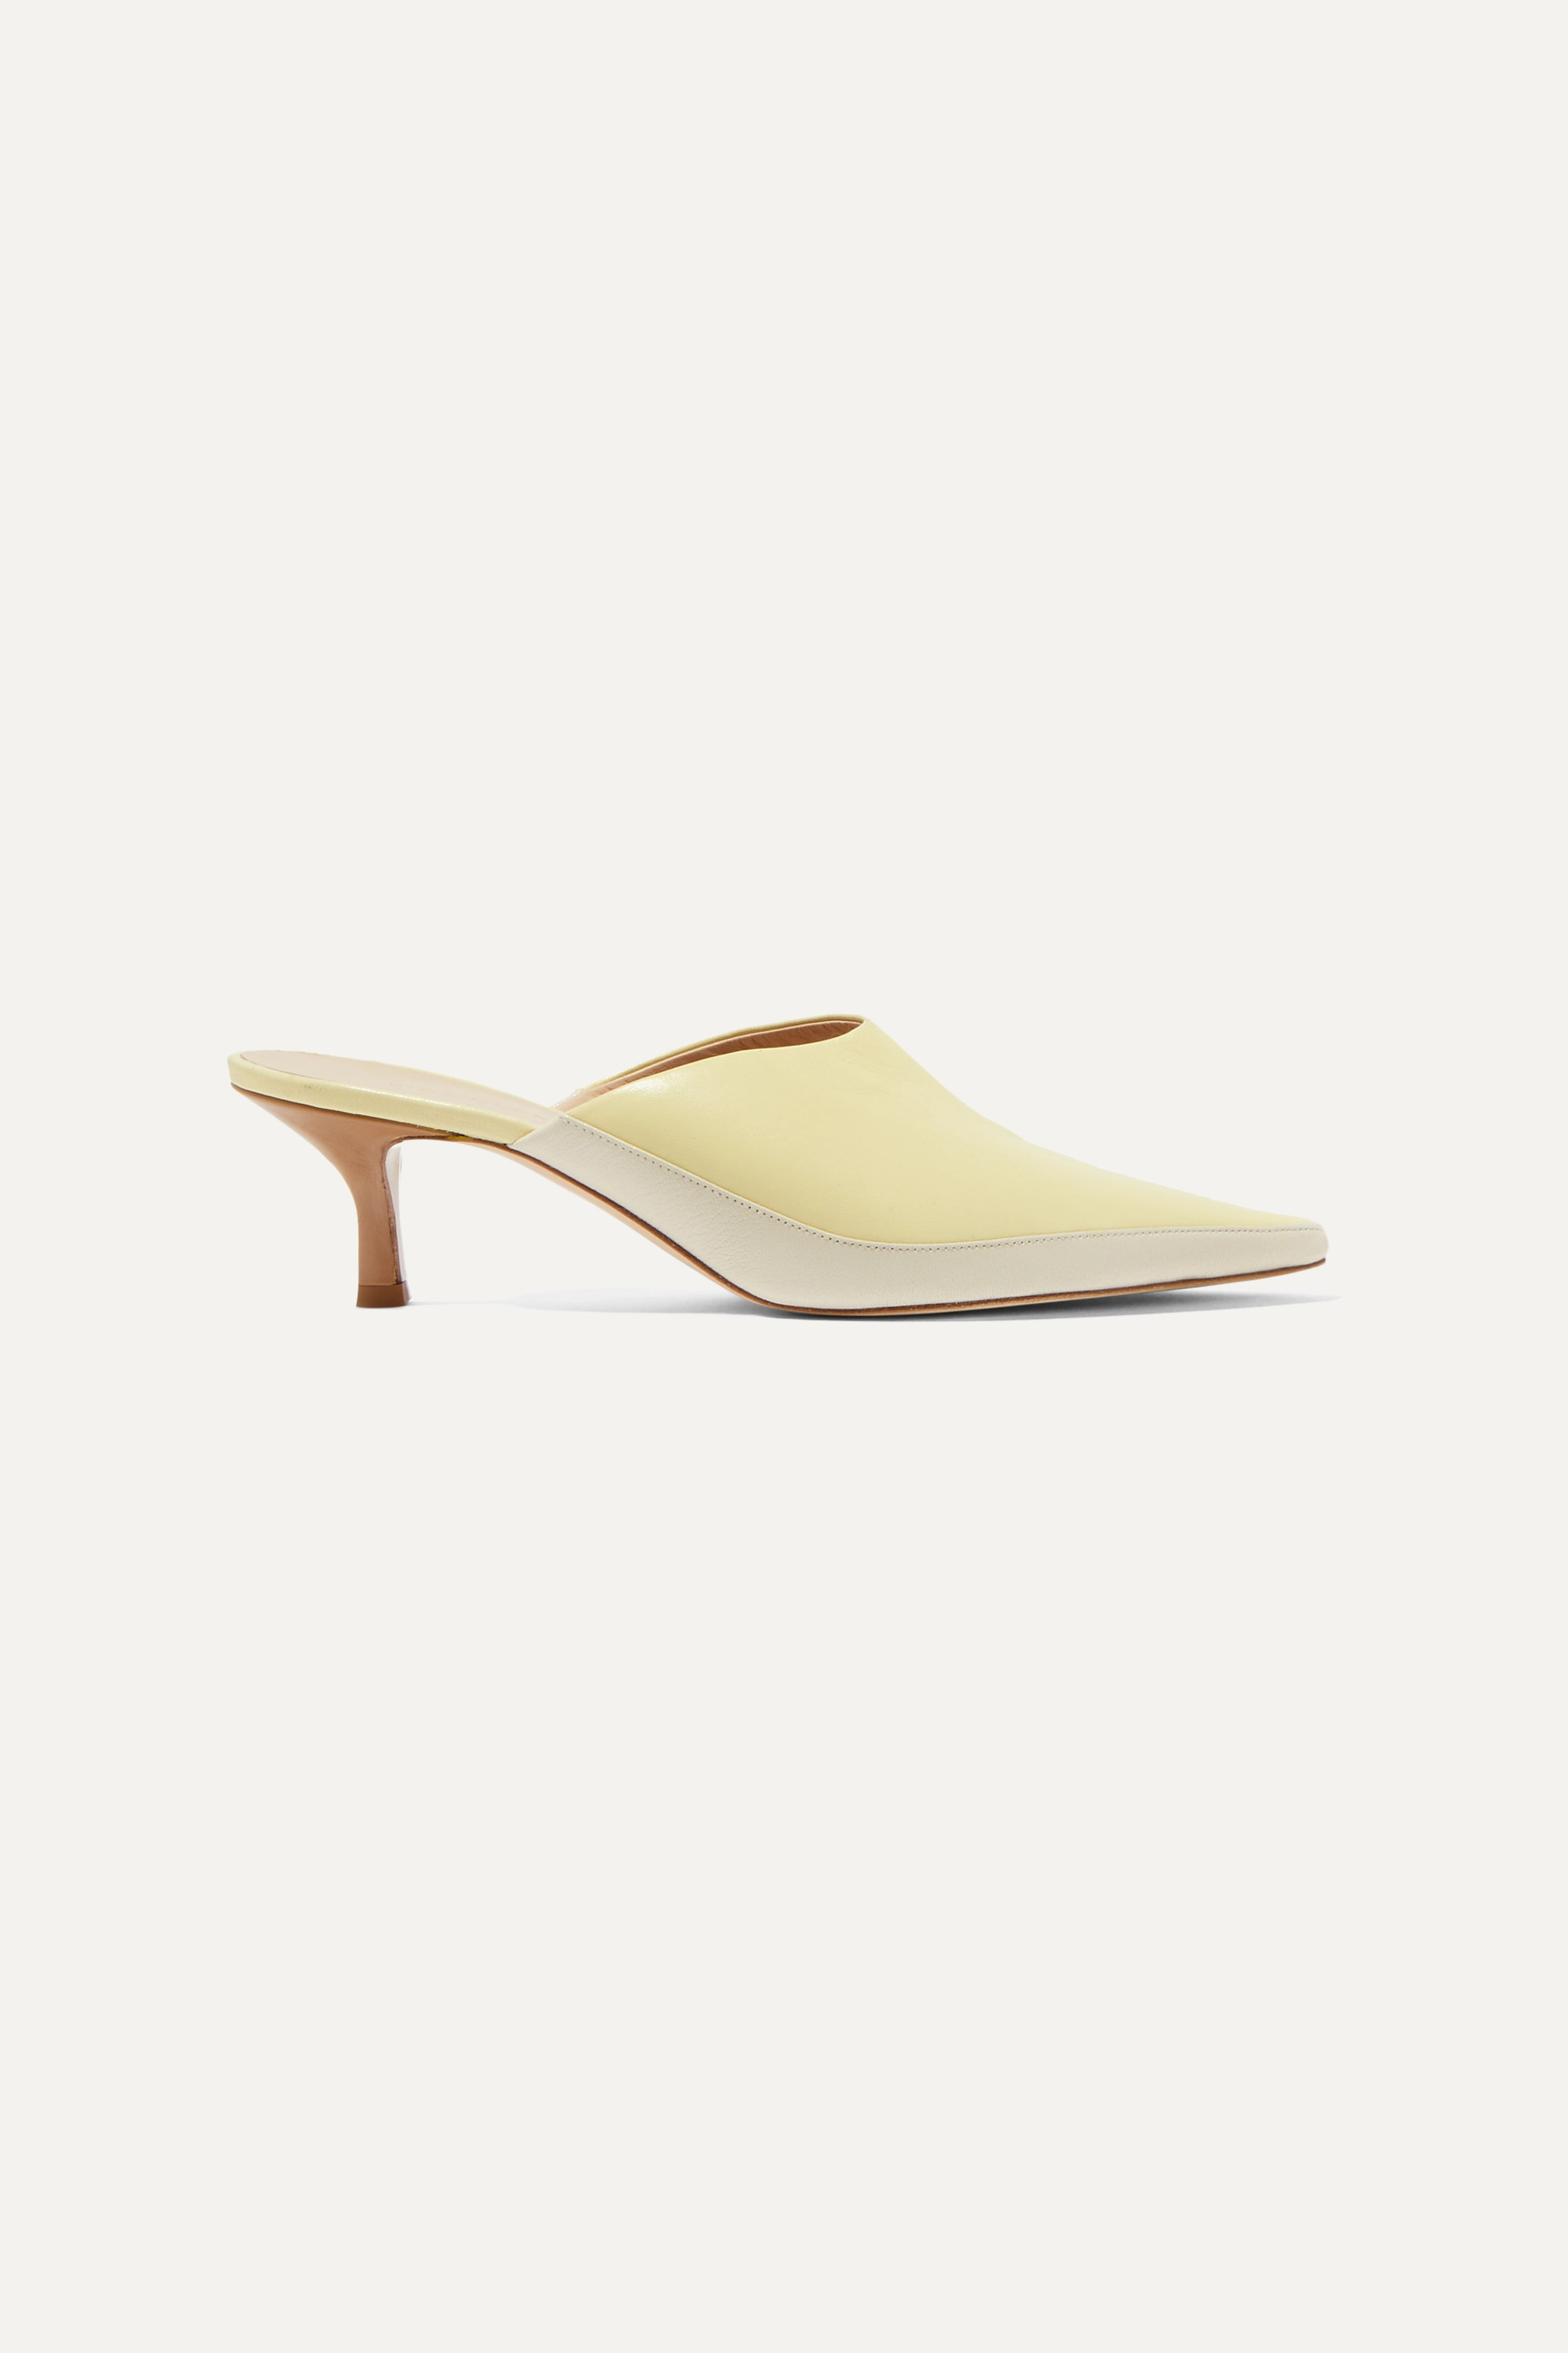 Wandler Bente two-tone leather mules